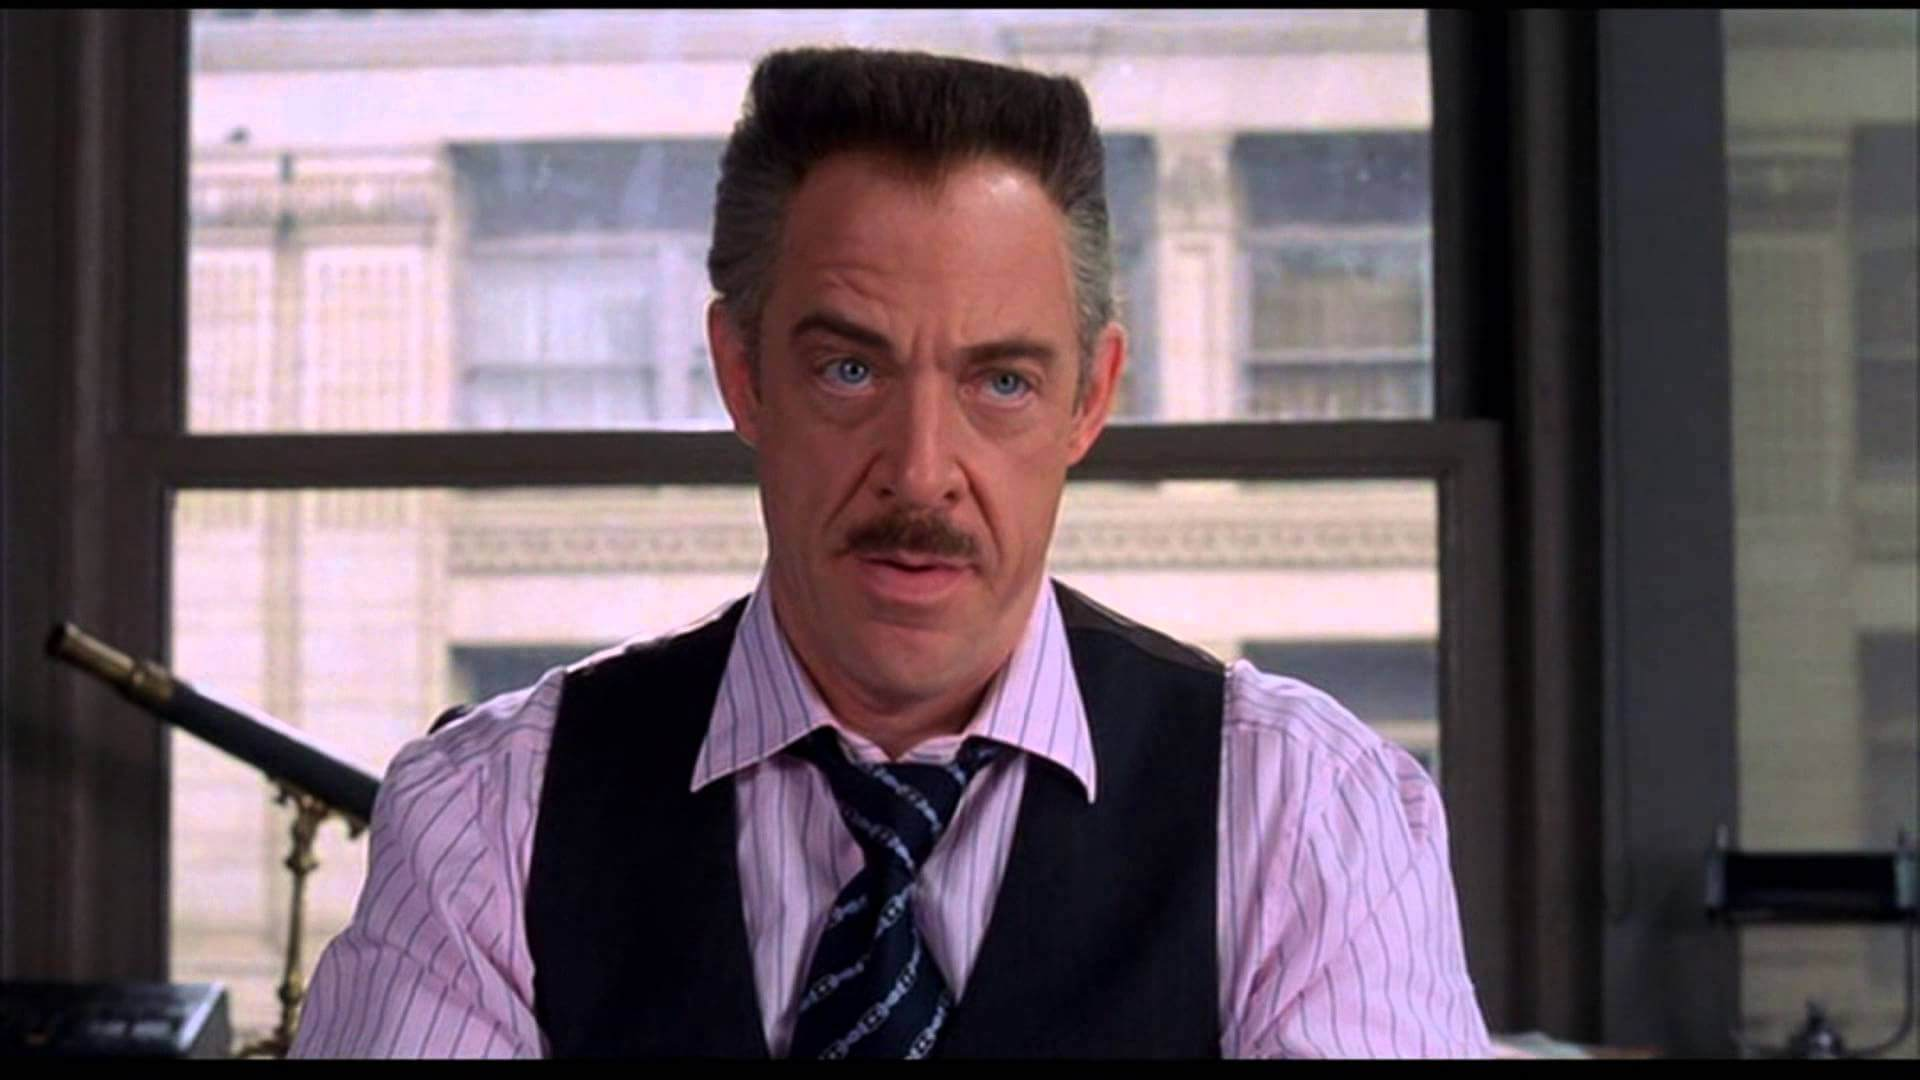 J.K. Simmons Could Return to Spider-Man as J. Jonah Jameson